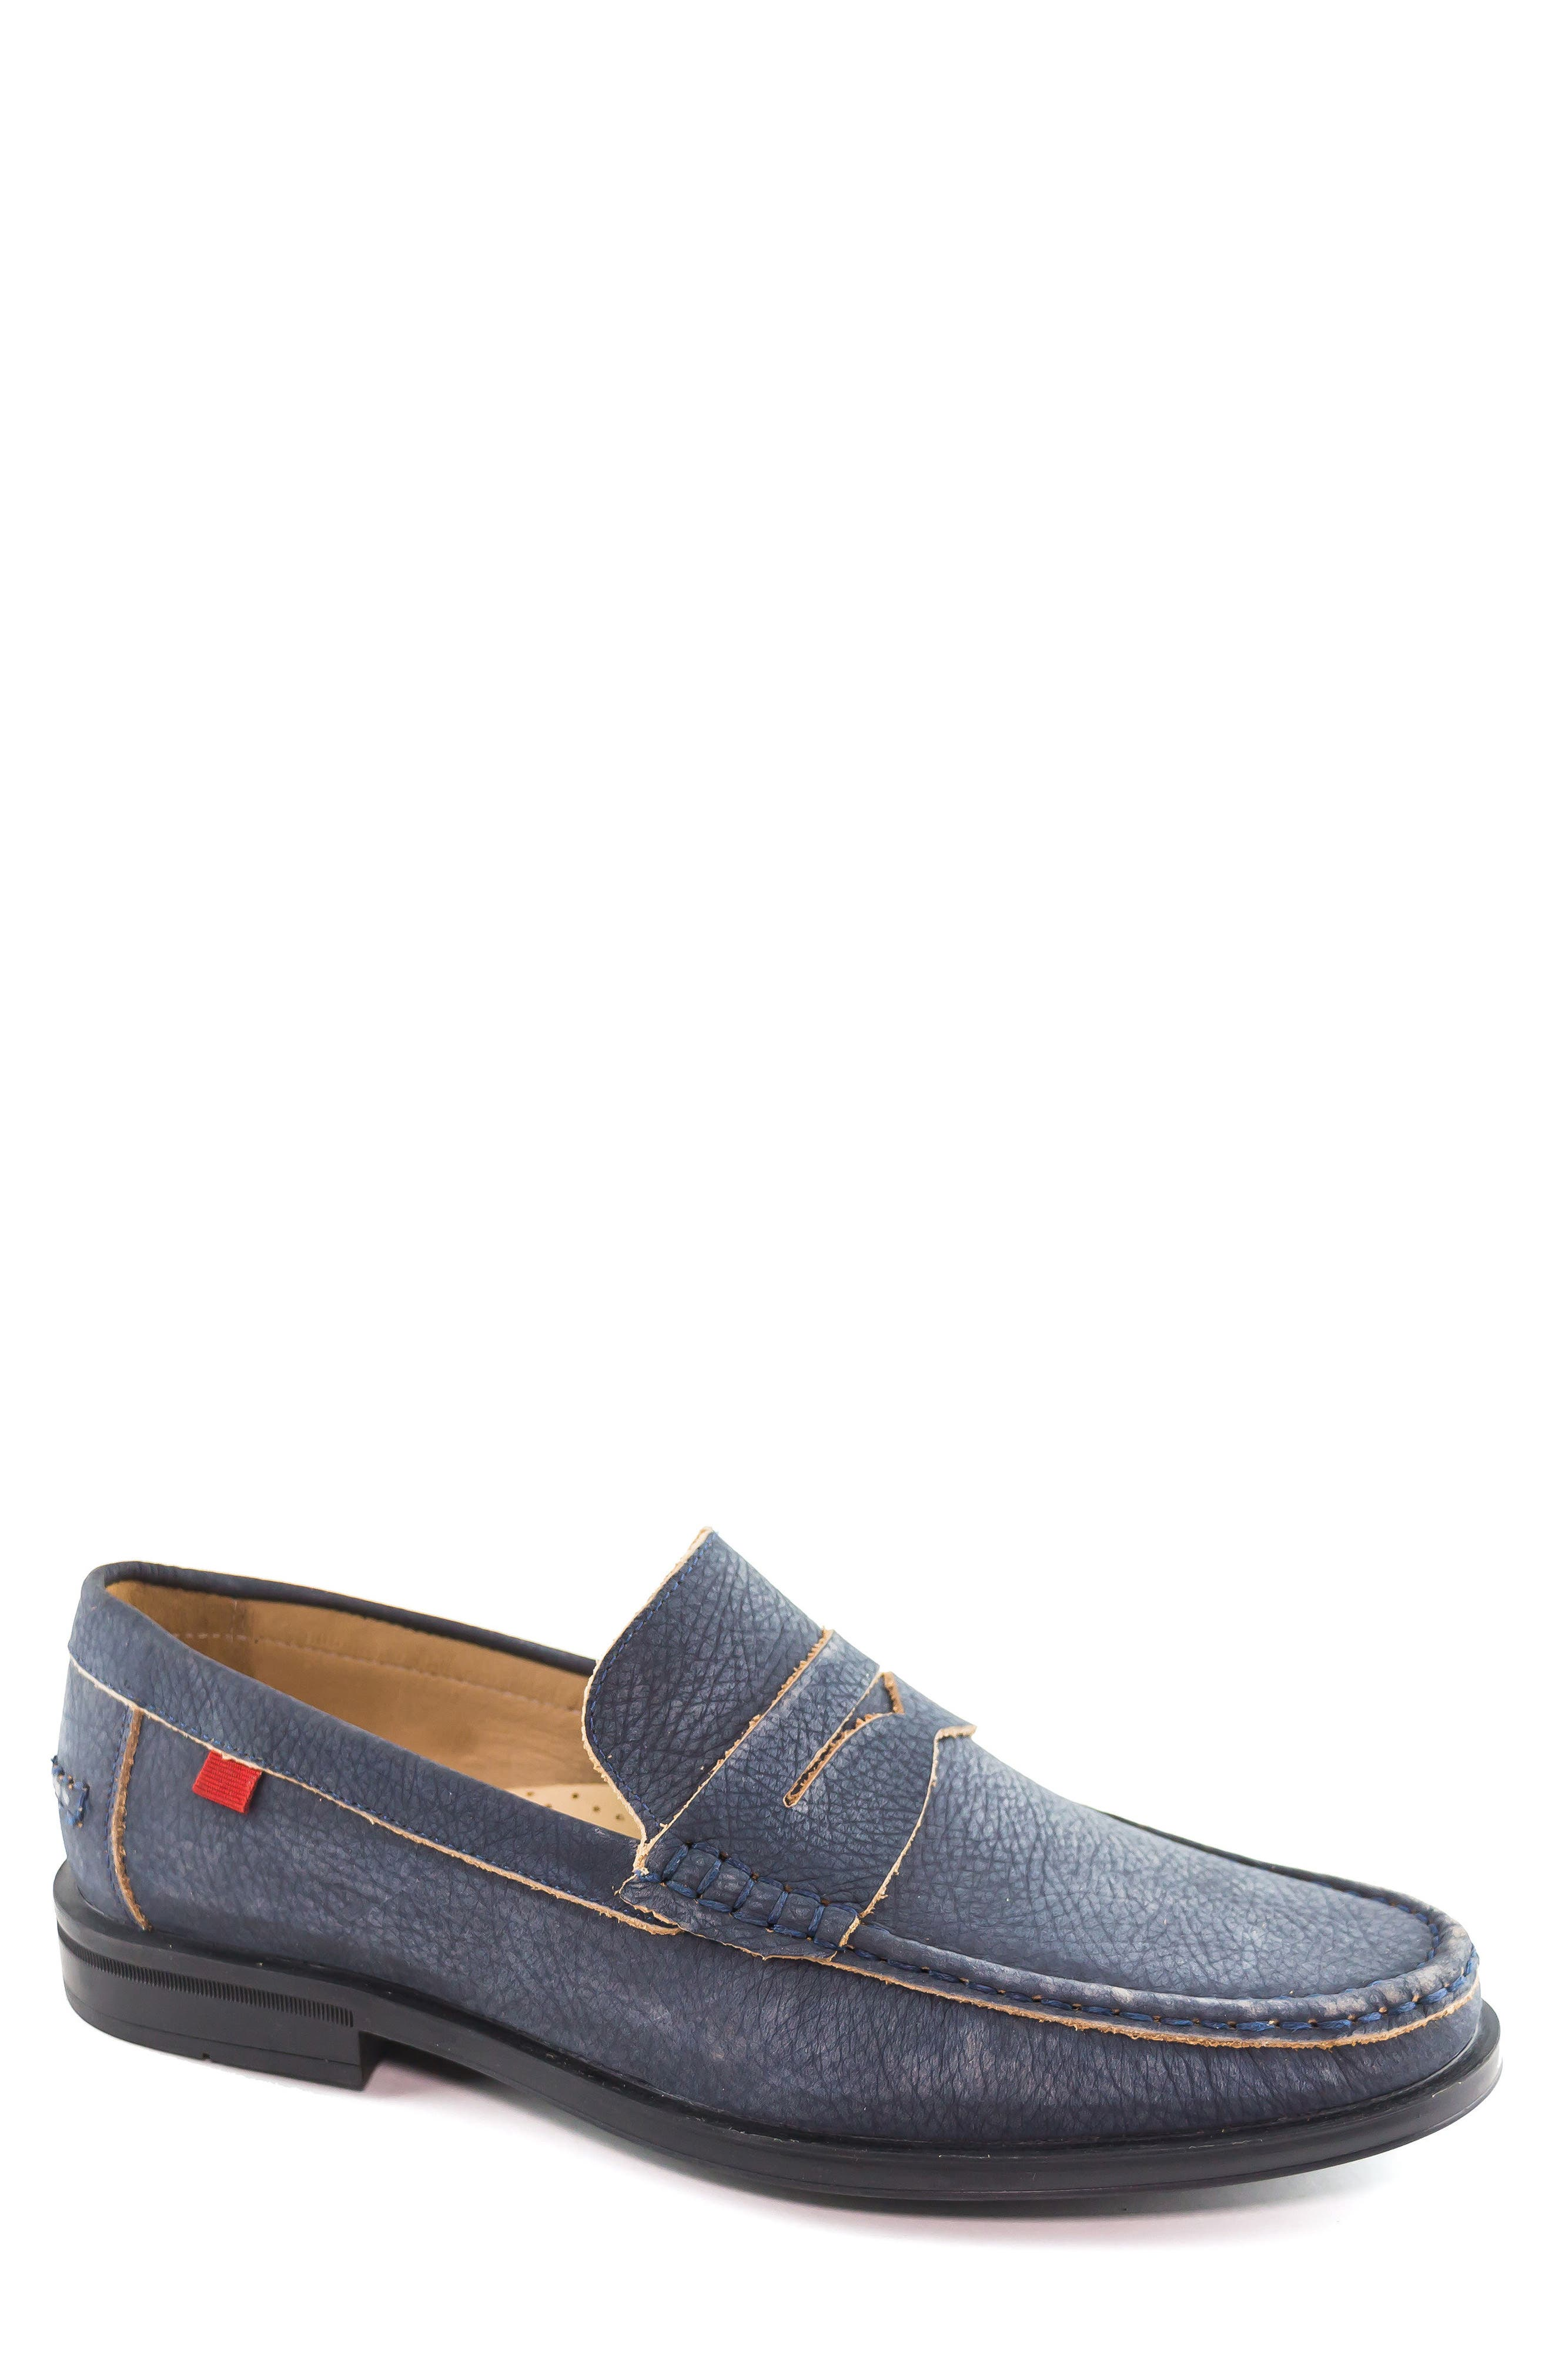 Cortland Penny Loafer,                         Main,                         color, Navy